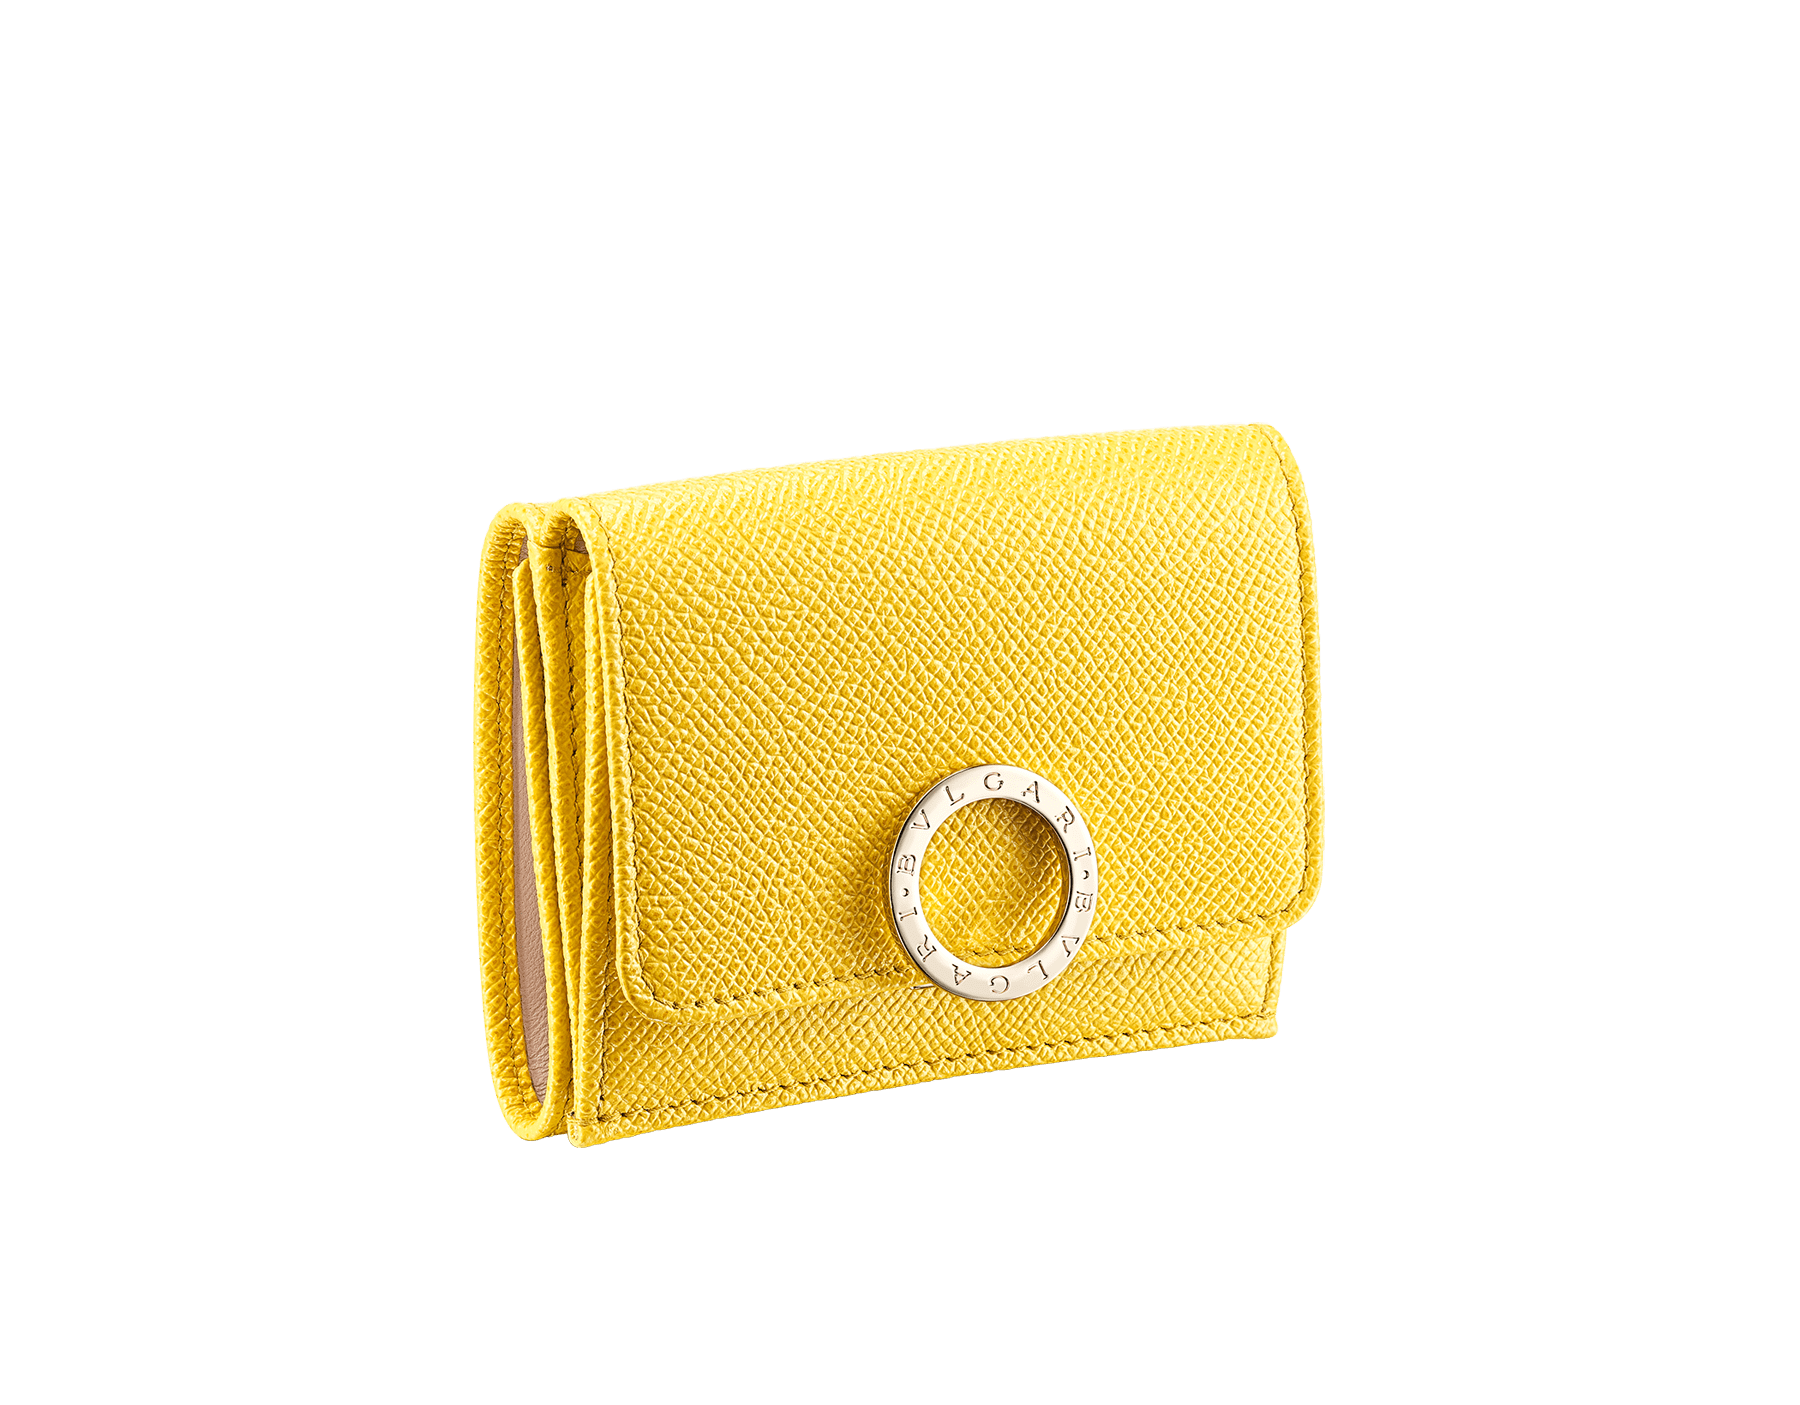 BVLGARI BVLGARI compact wallet in daisy topaz bright grain calf leather and crystal rose nappa leather. Iconic logo clip closure in light gold plated brass on the flap and a press stud closure on the body. 289768 image 1